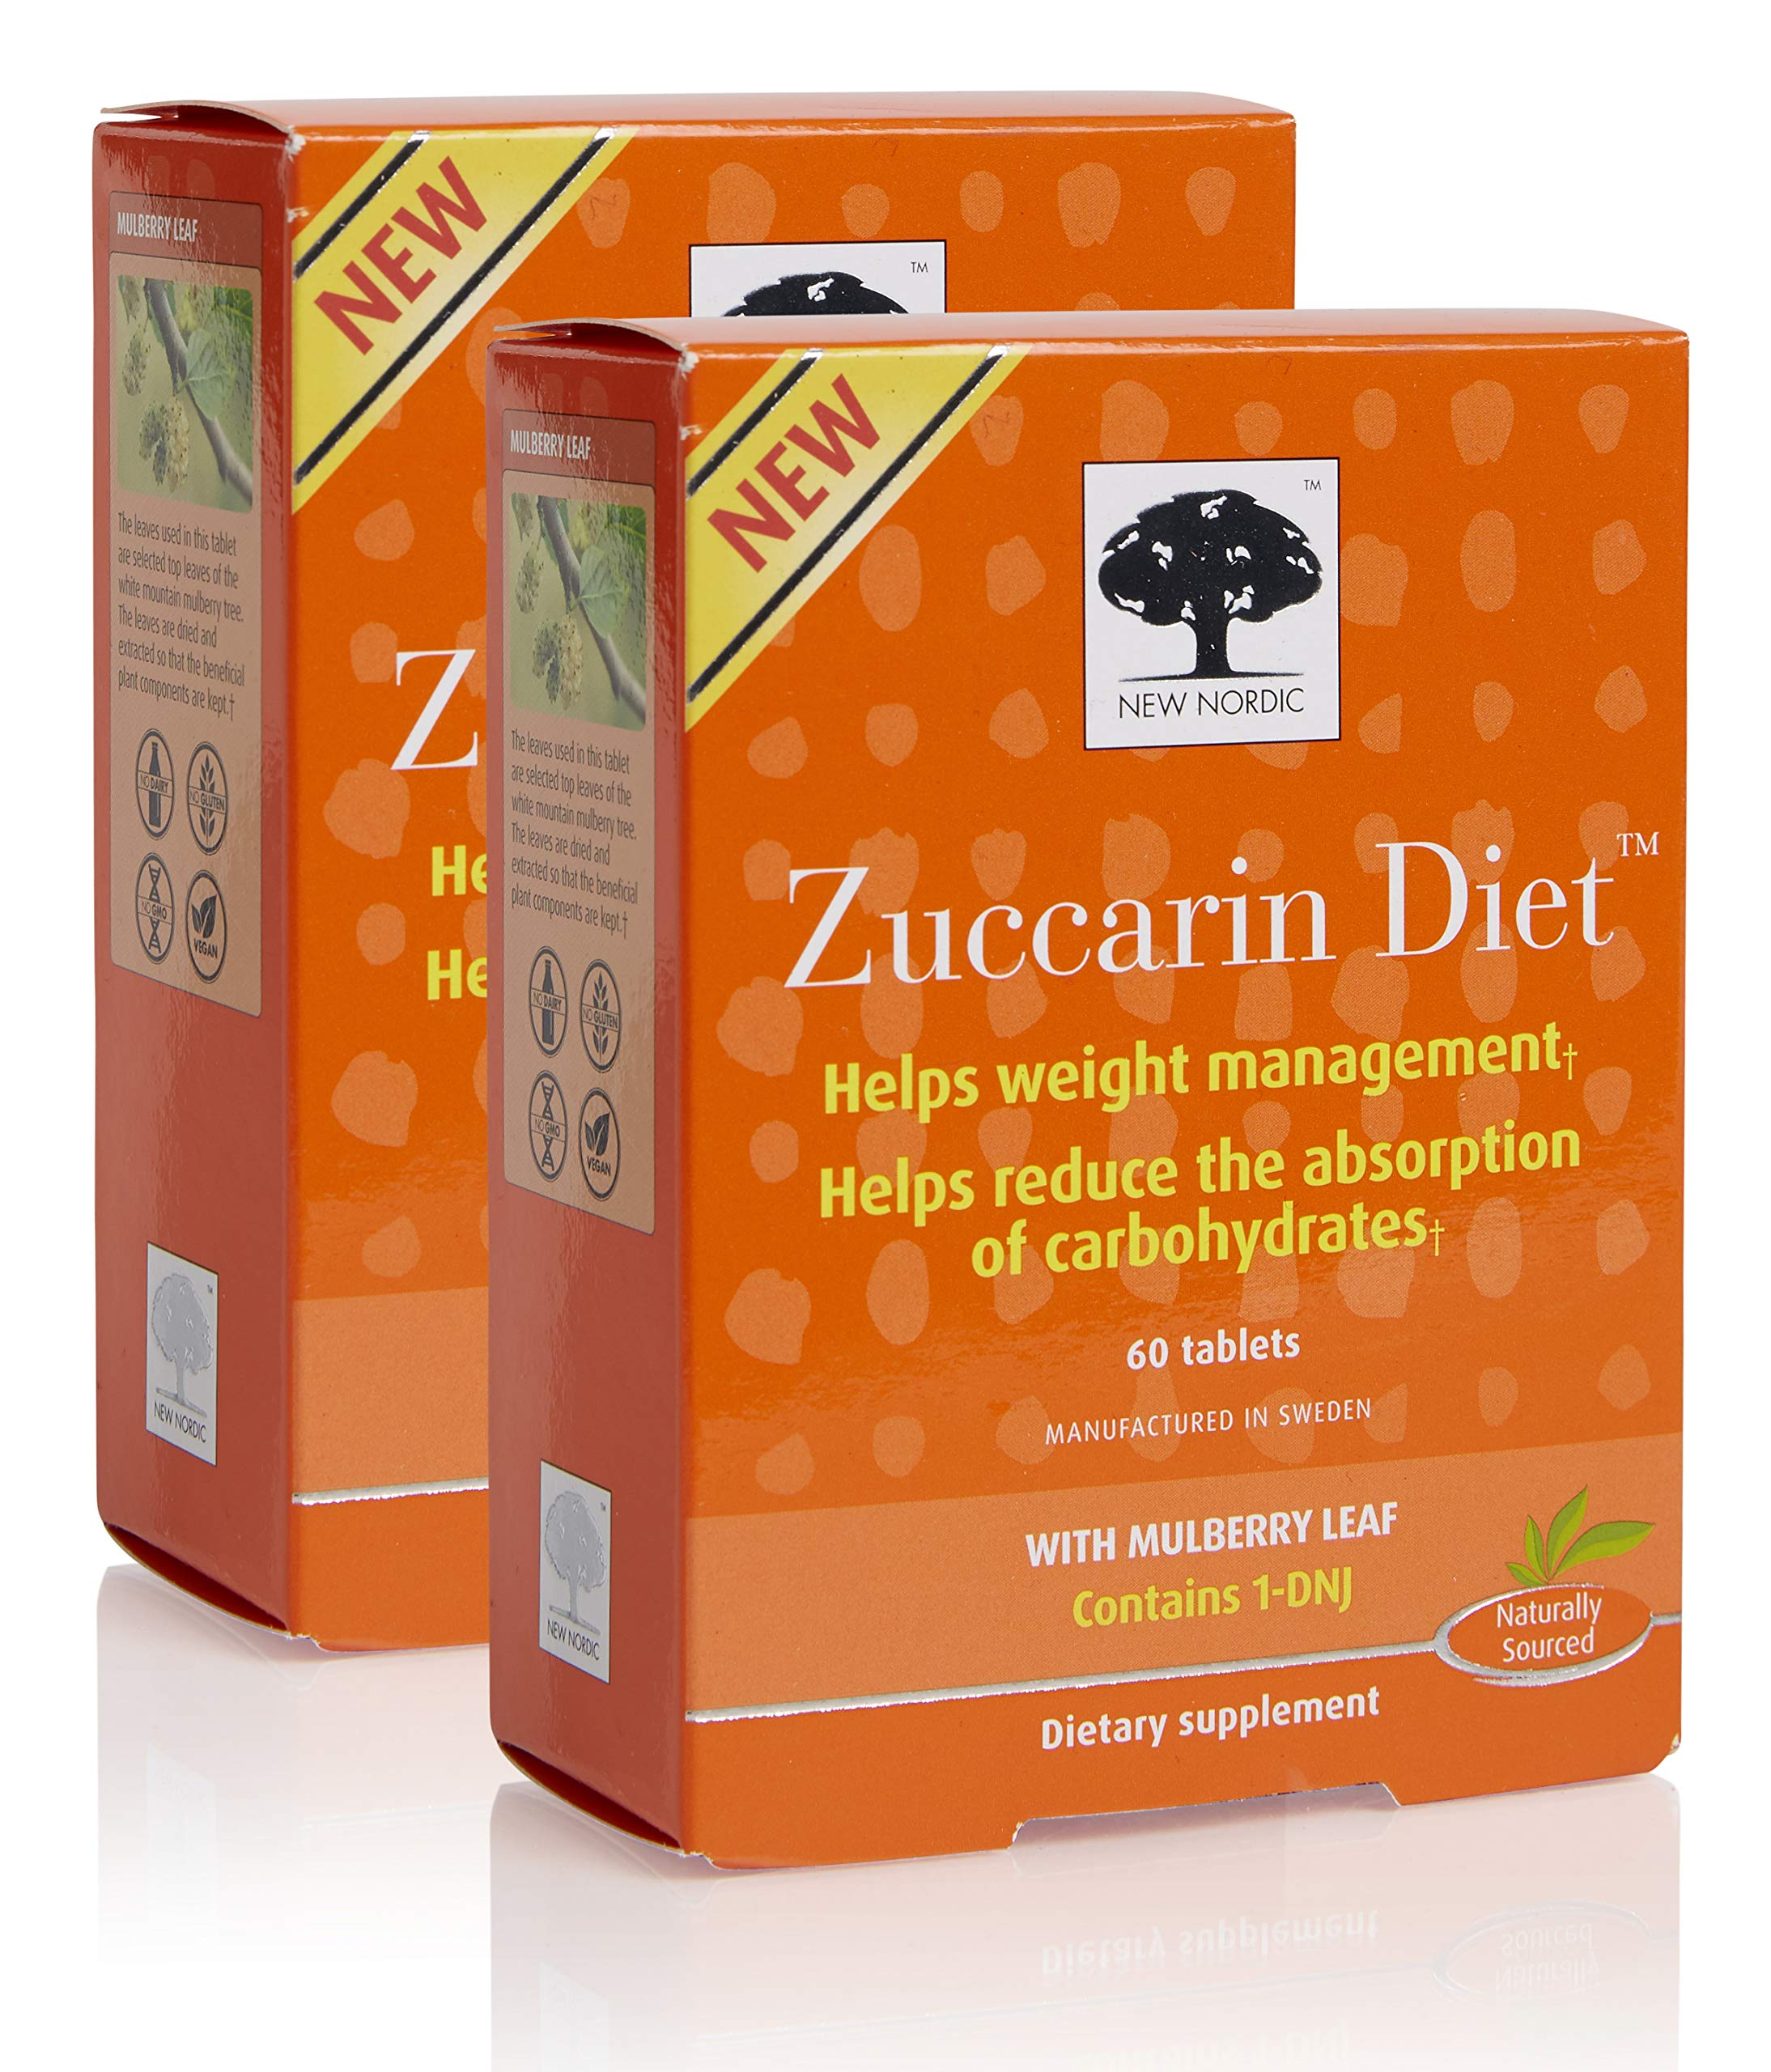 New Nordic Zuccarin Diet with Mulberry Leaves Dietary Supplement (60 Tablets) (2 Pack) by New Nordic